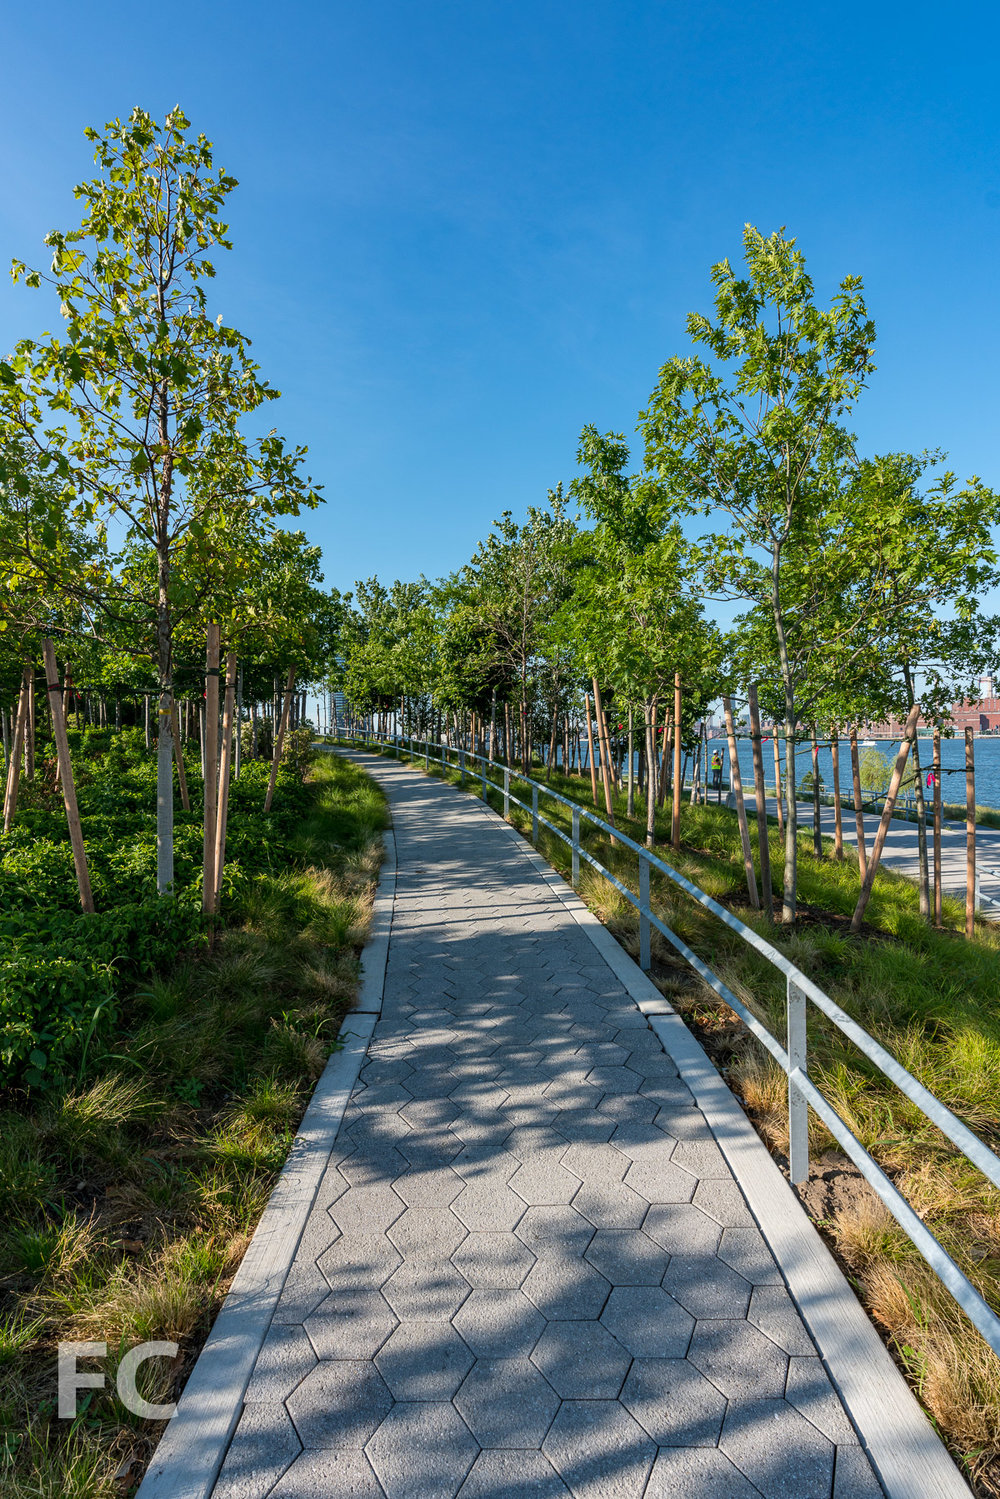 2018_06_25-Hunters Point South Park Phase 2-DSC01779.jpg